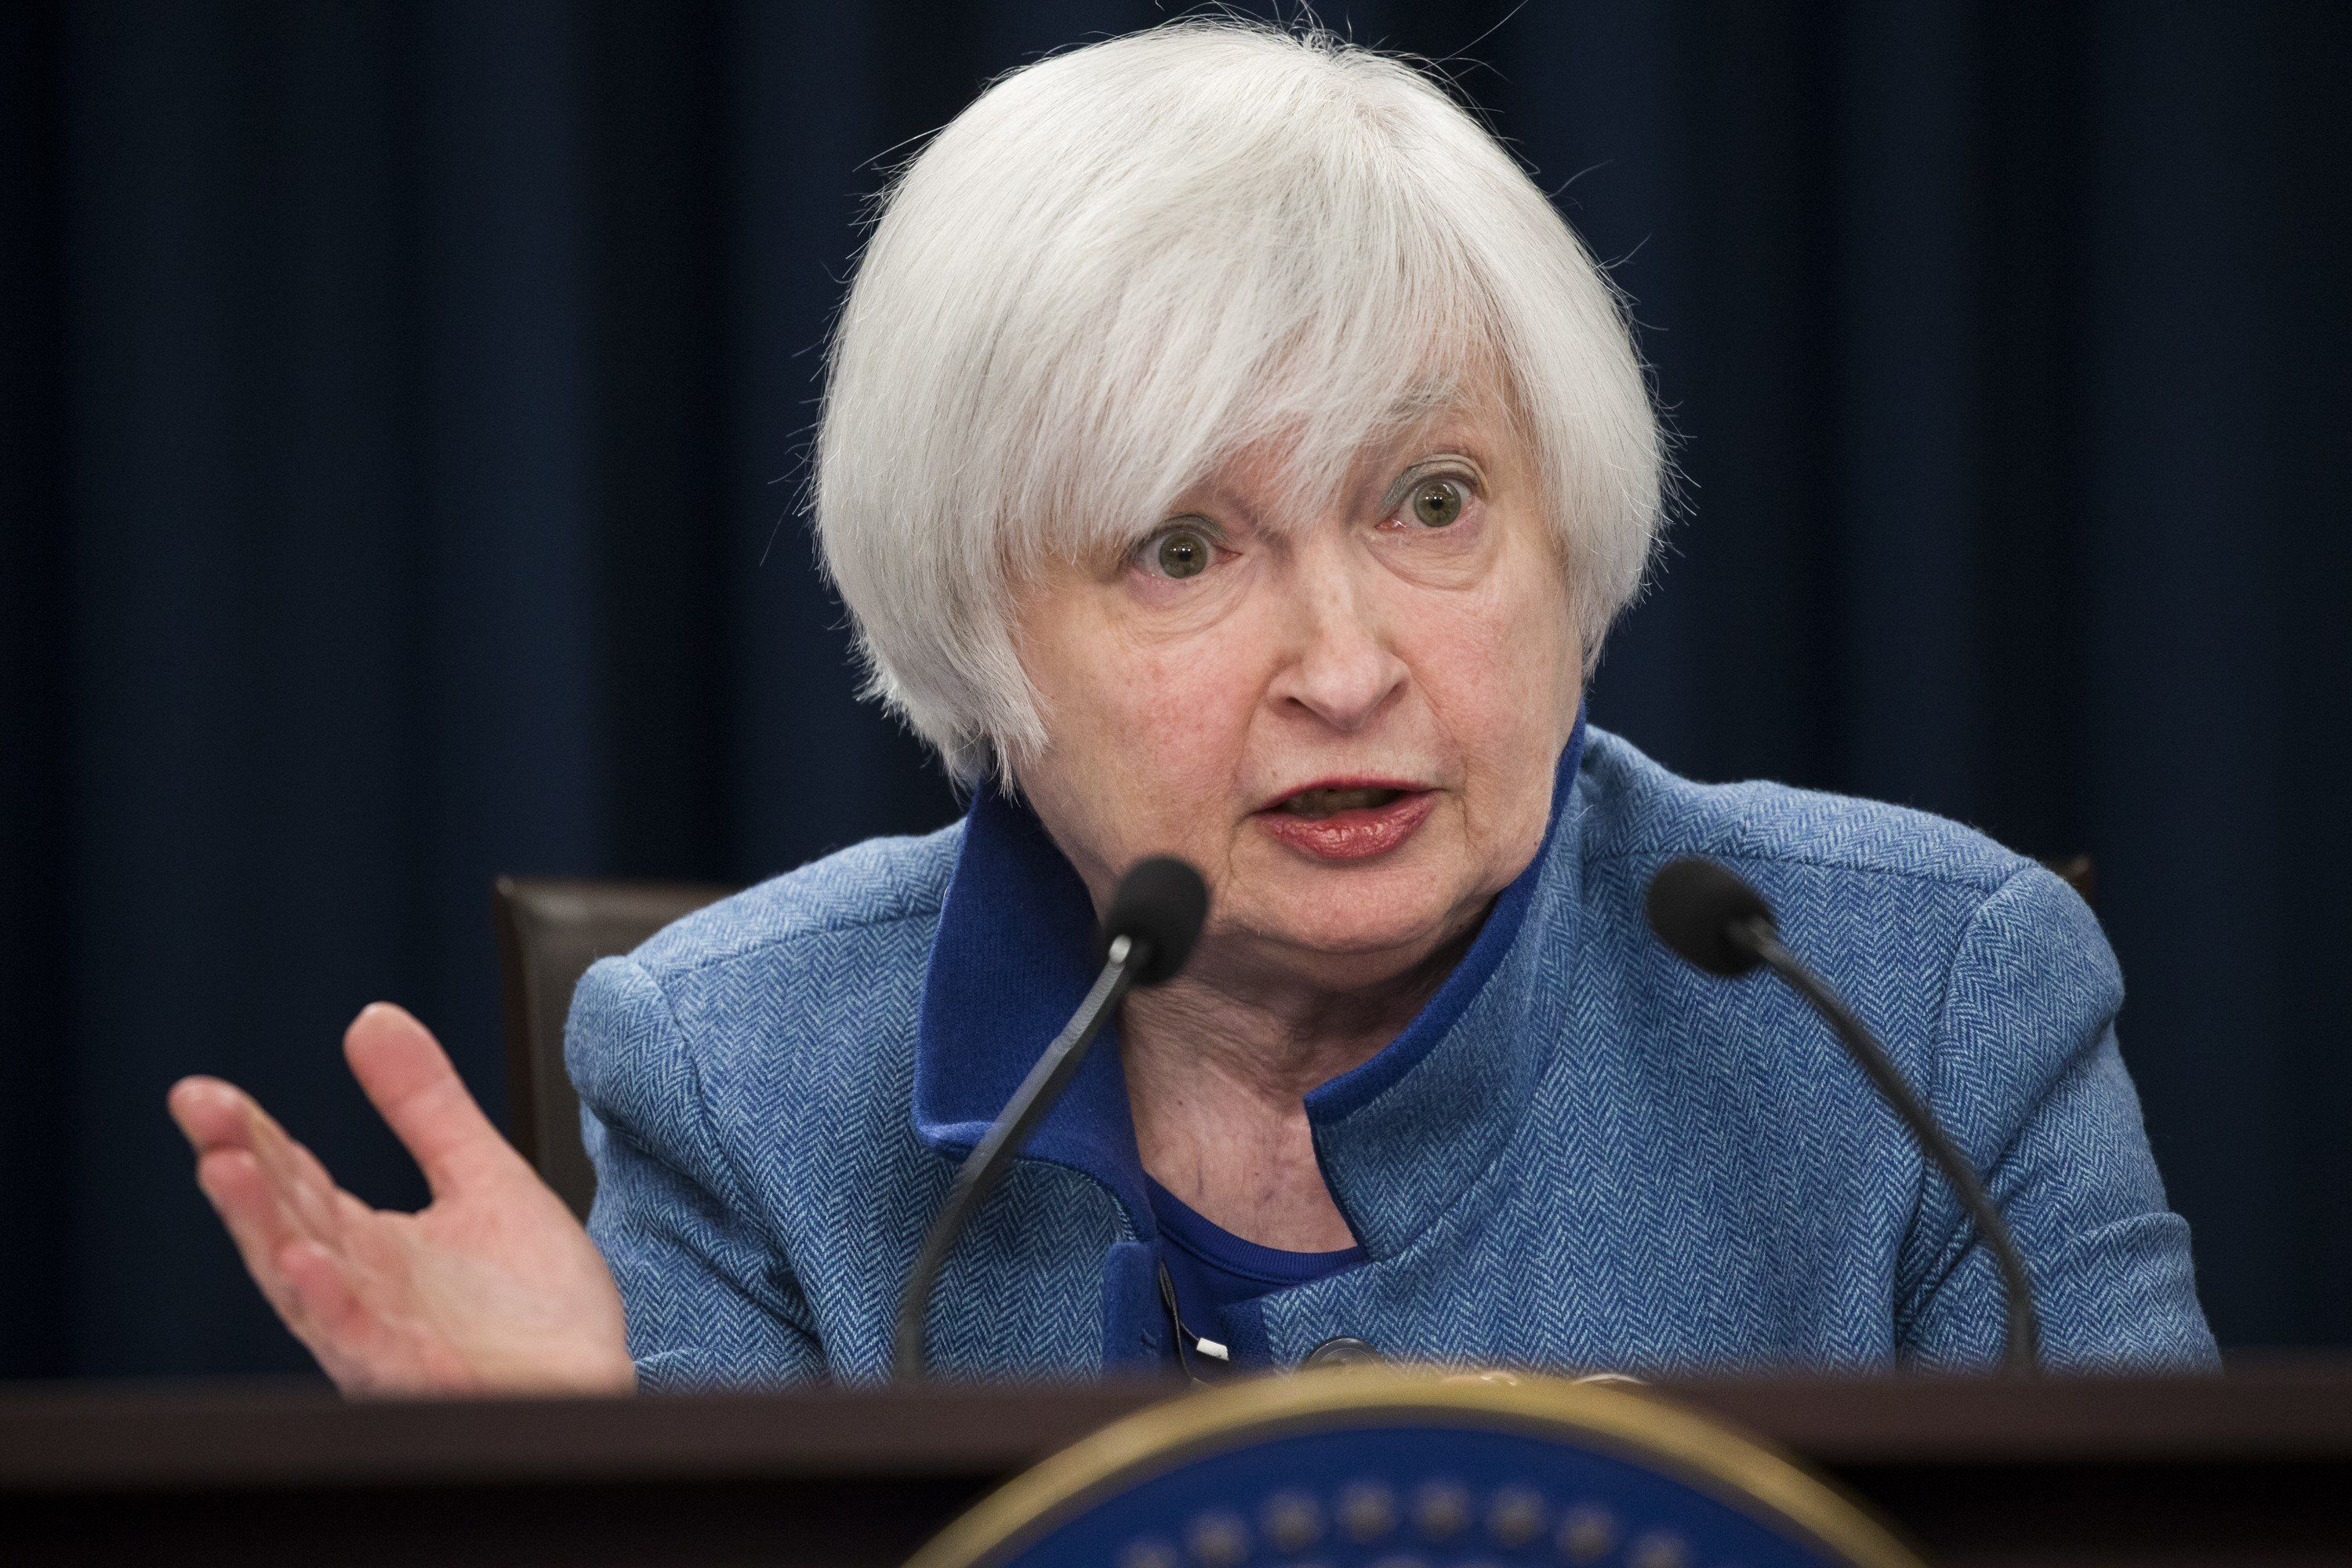 Federal Reserve chairwoman Janet Yellen speaks during a press conference following the Fed's interest rate announcement in Wa